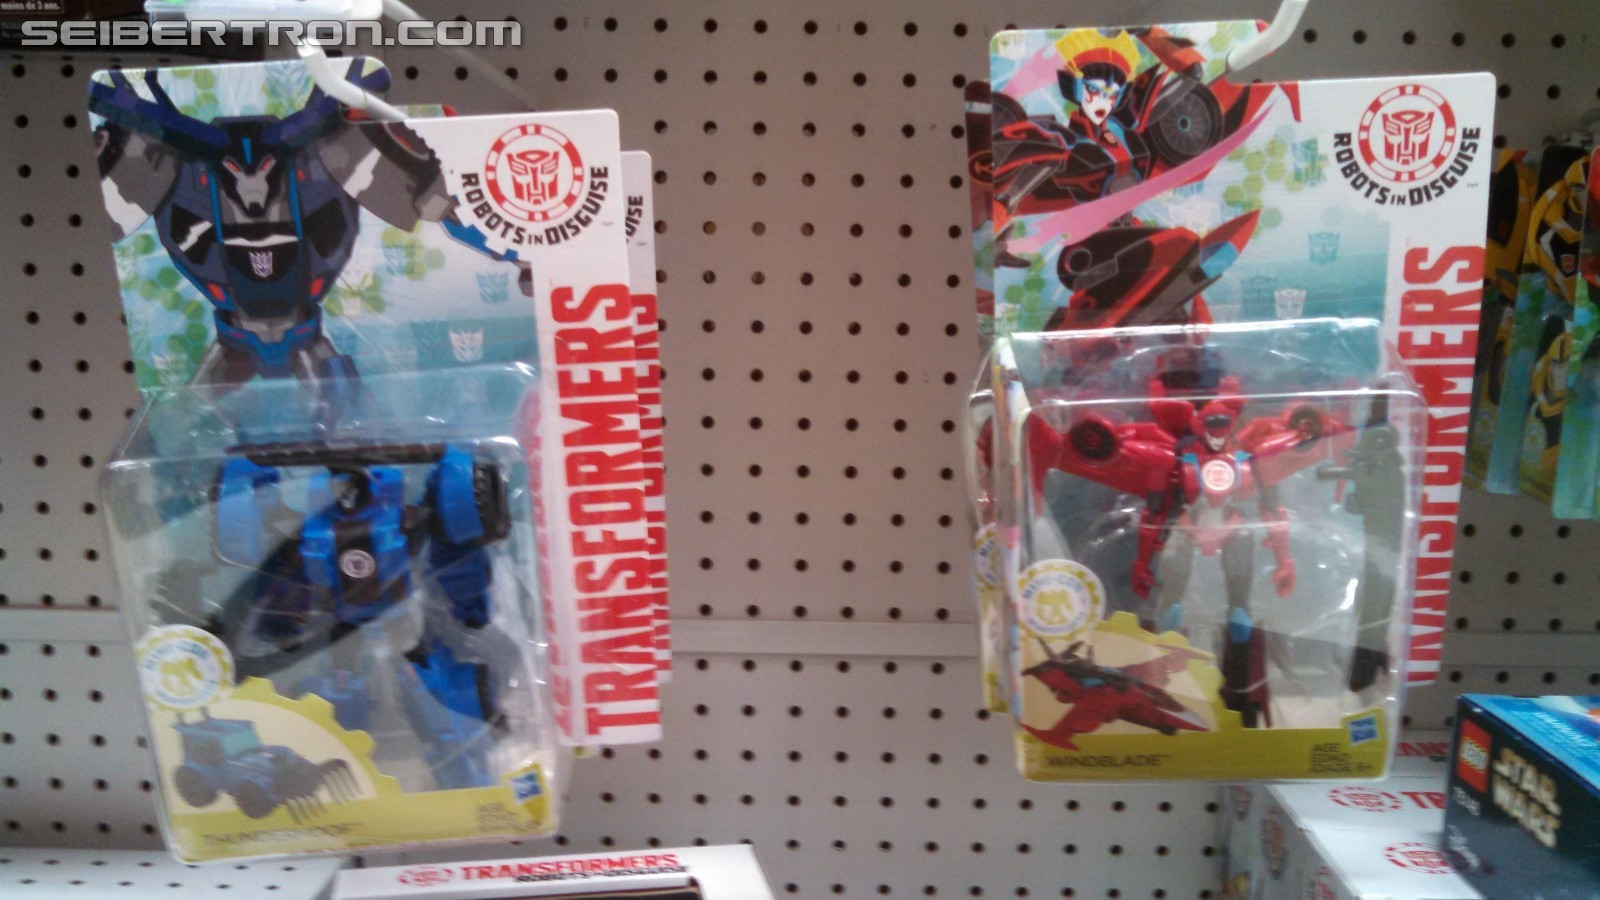 Transformers News: Transformers Robots in Disguise Wave 7 Featuring Windblade, Scorponok and new Prime Found in US